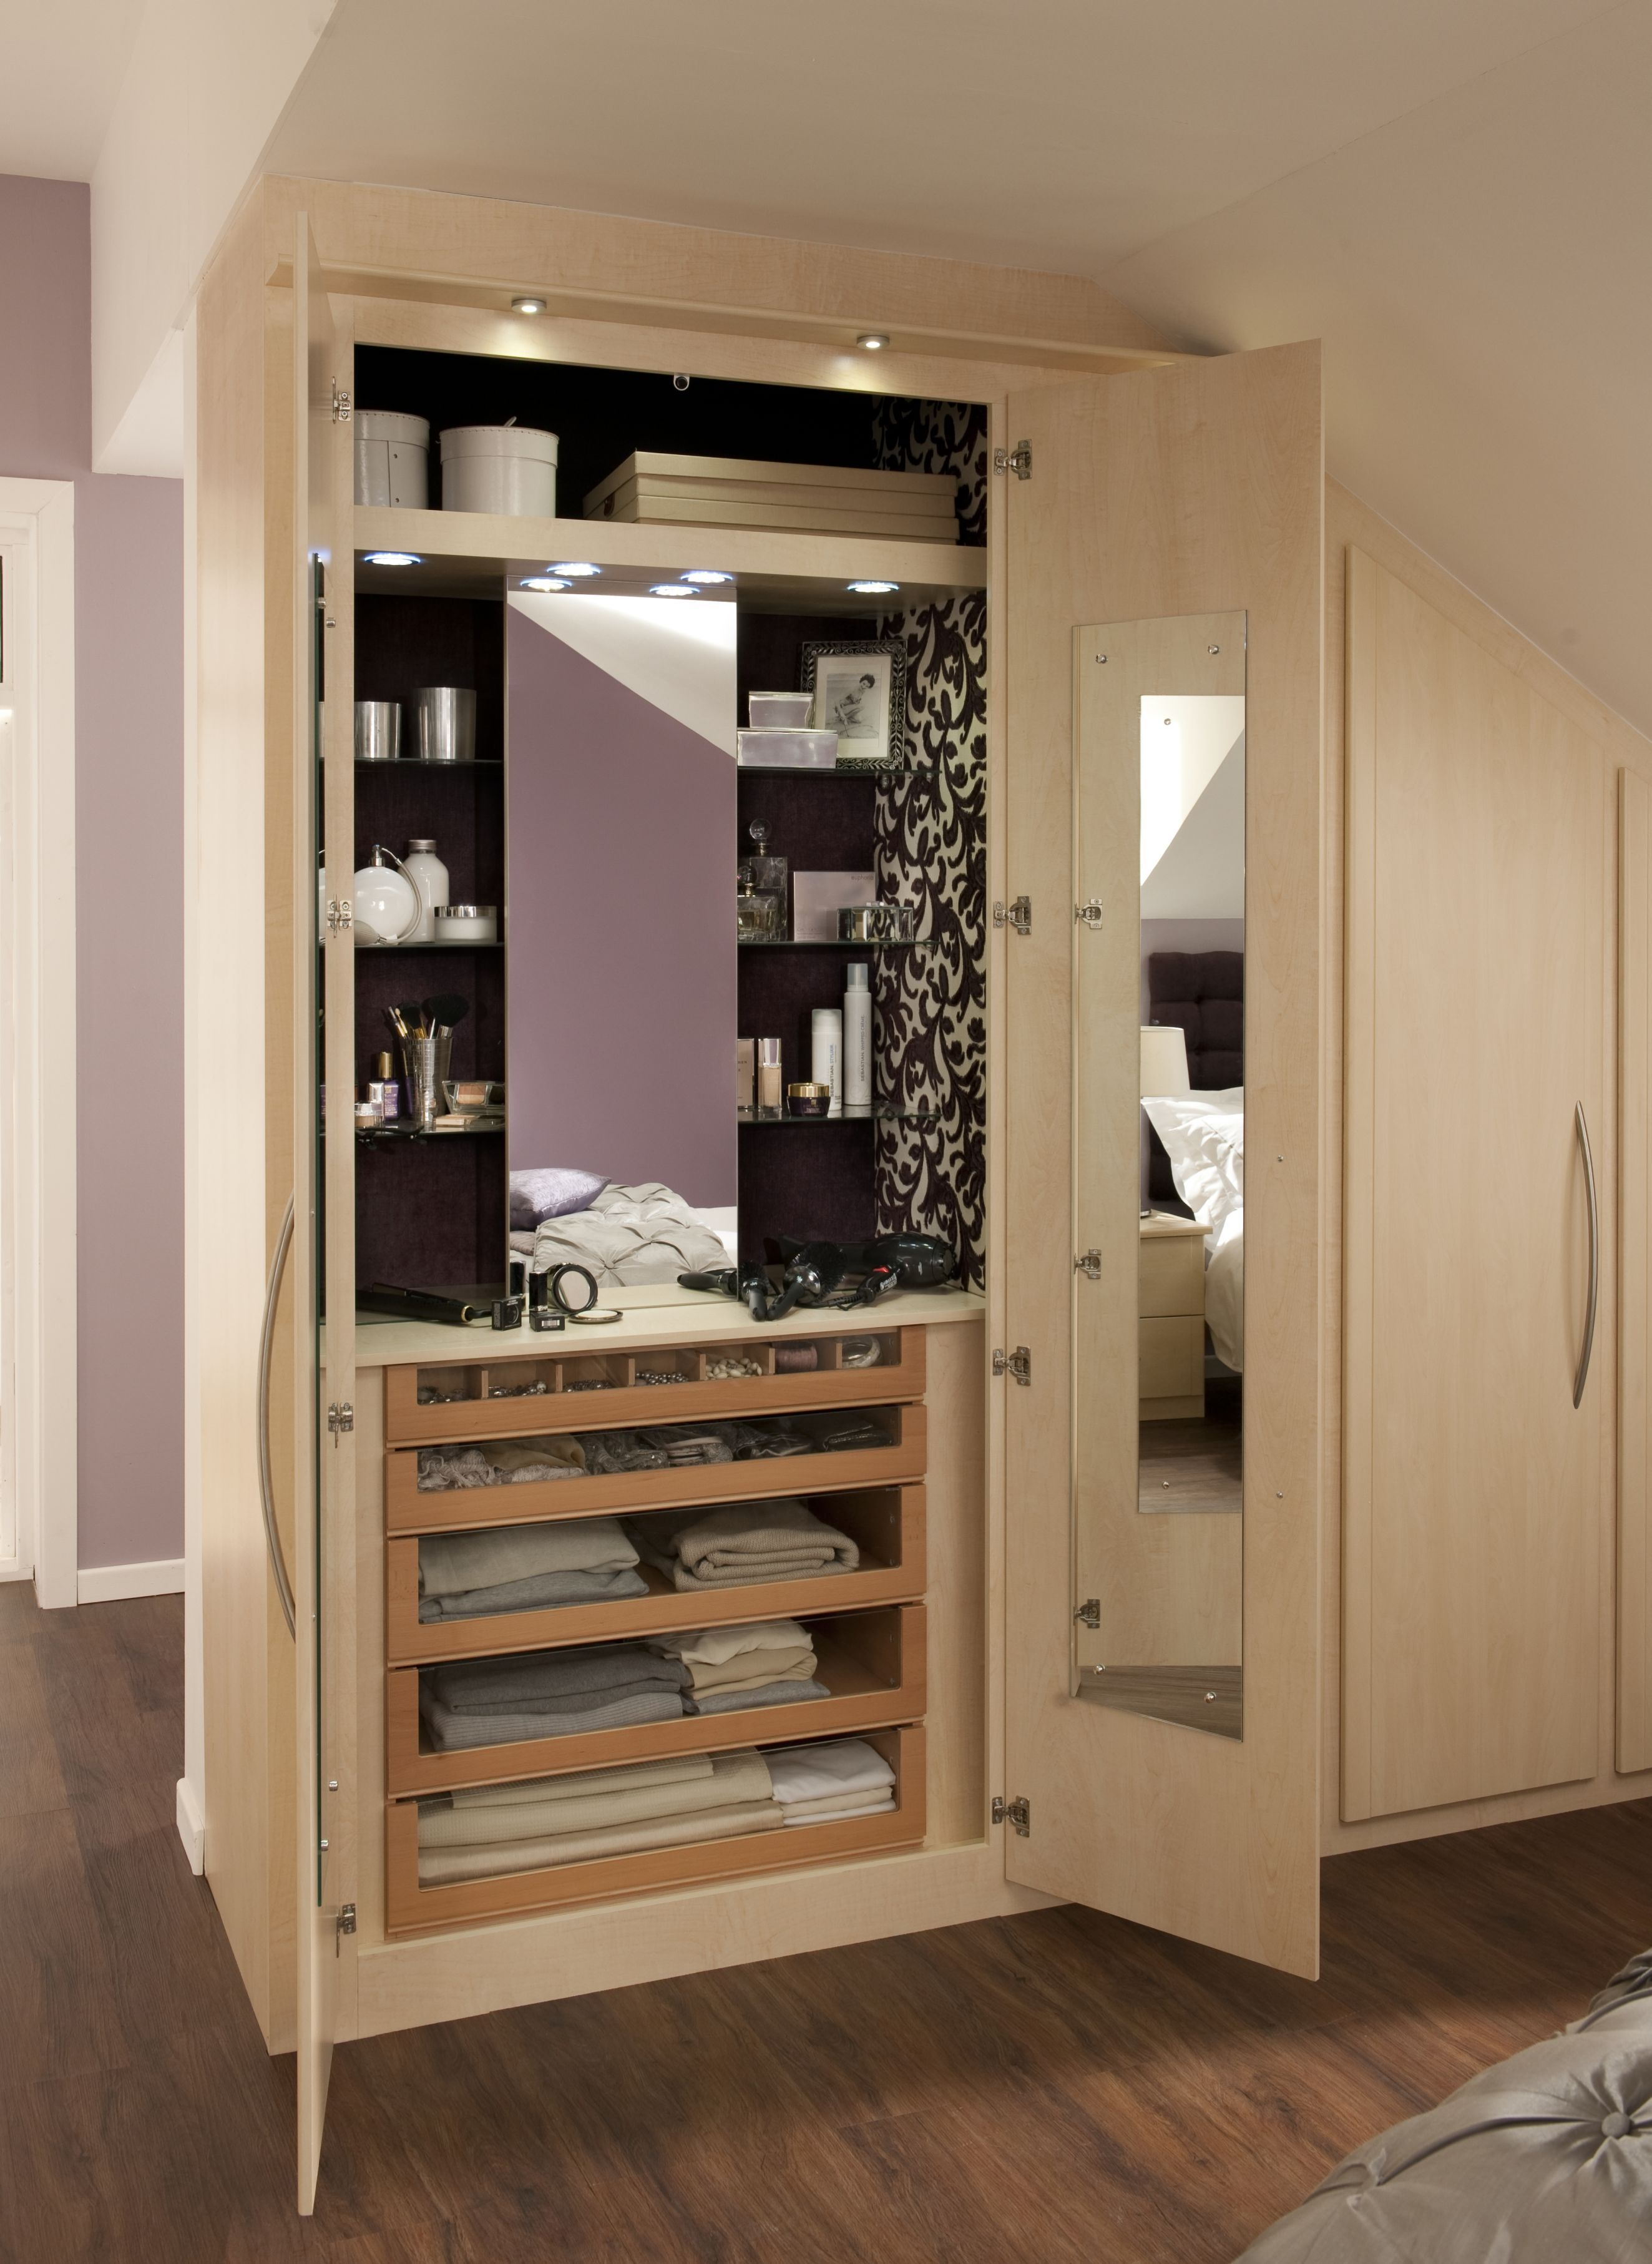 Good Glamour Cabinet from Sharps featured in Milan Maple